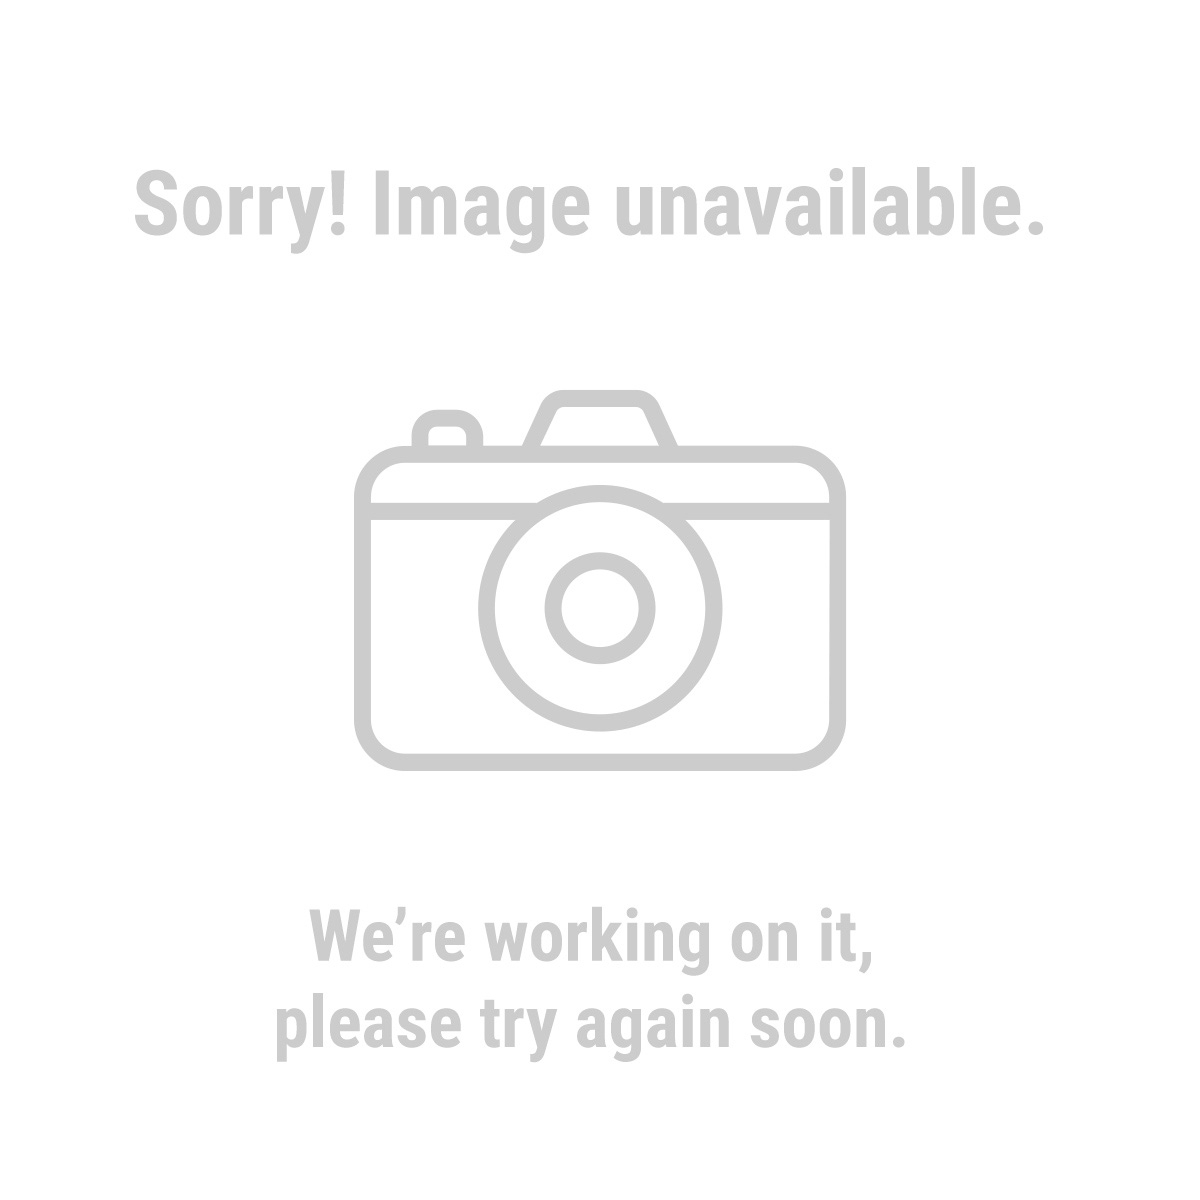 Western Safety 95568 Police-Style Kevlar Gloves, Large